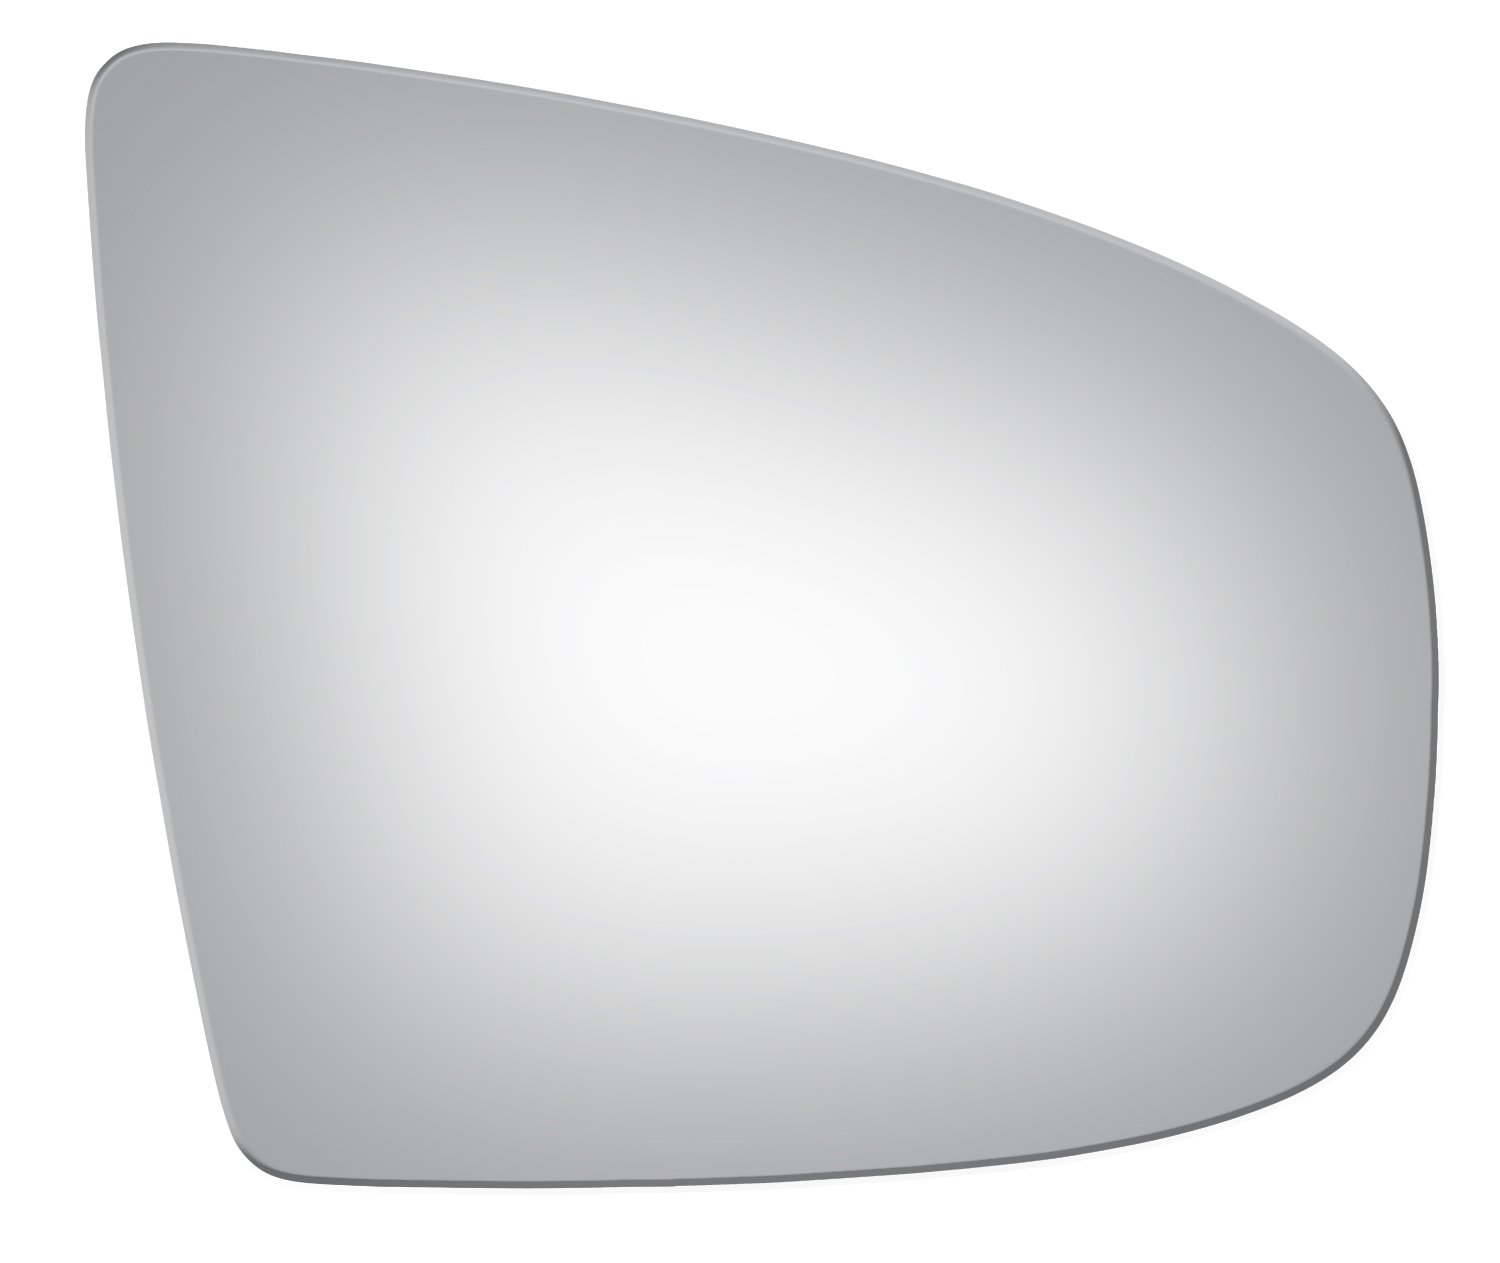 2007-2013 BMW X5, 2008-2014 BMW X6 Convex Passenger Side Power Replacement Mirror Glass Burco